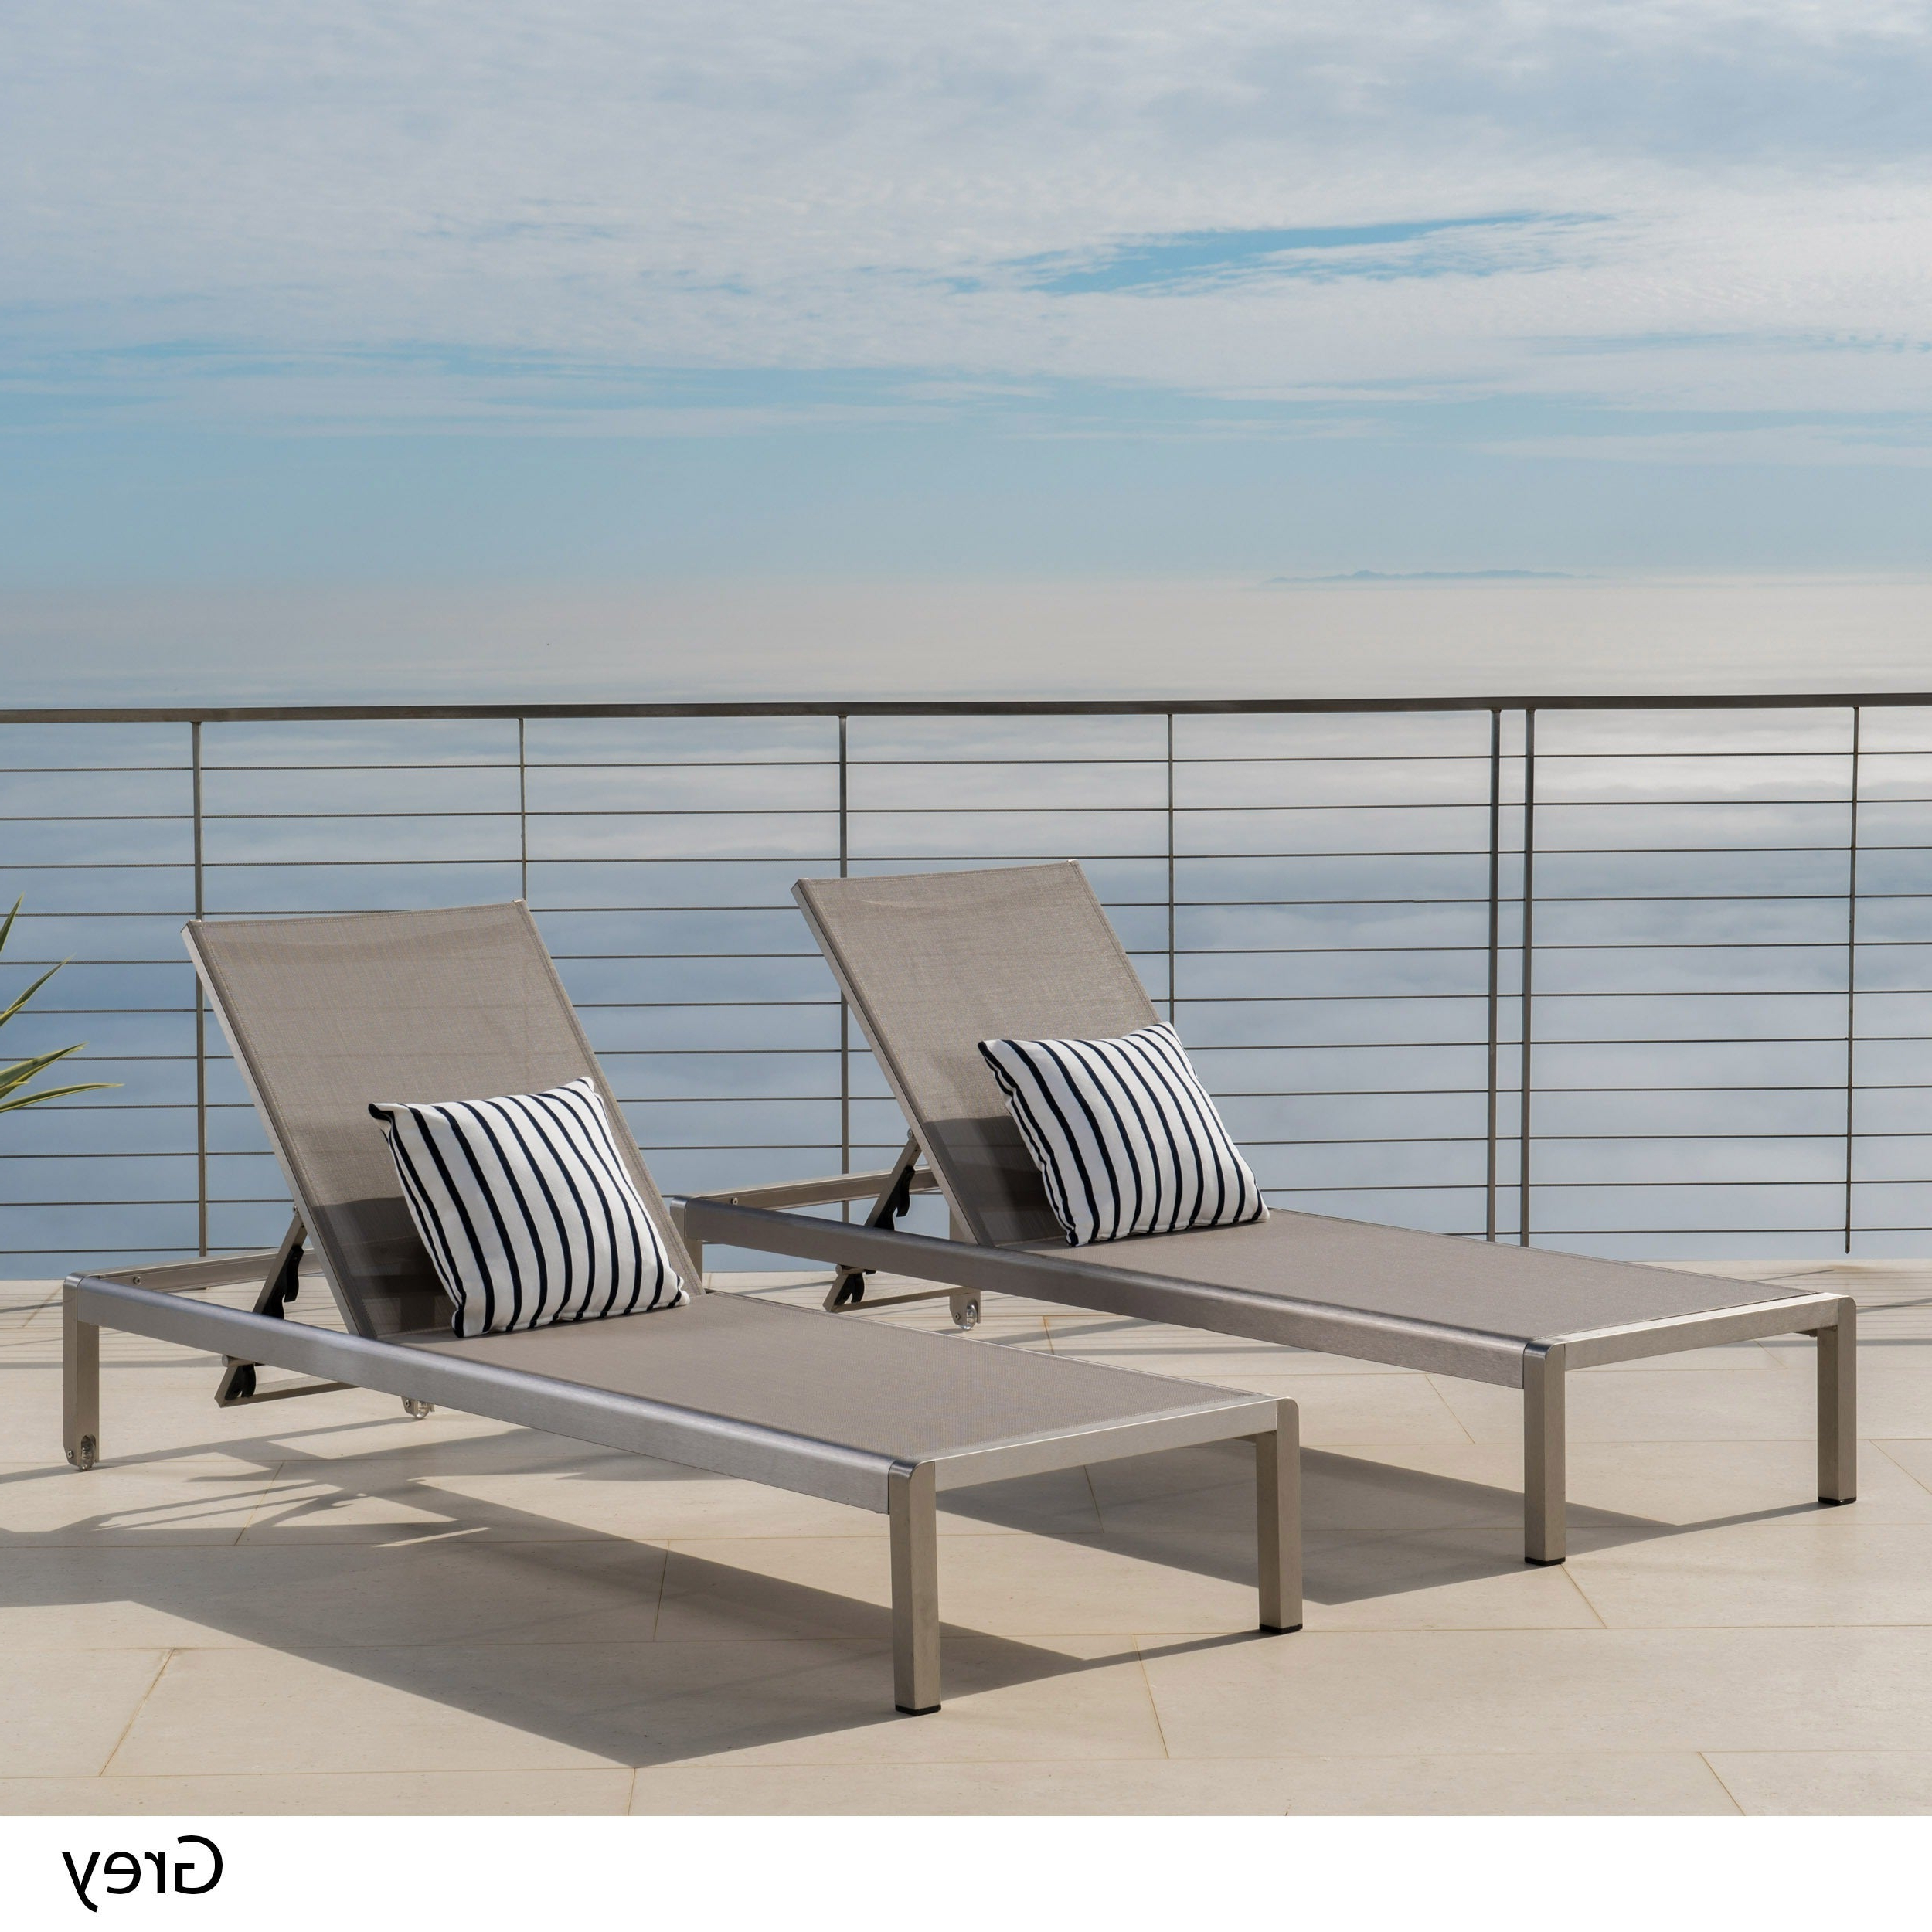 Cape Coral Outdoor Aluminum Adjustable Chaise Lounge (set Of 2) Christopher Knight Home Pertaining To 2020 Cape Coral Outdoor Aluminum Chaise Lounges (View 3 of 25)